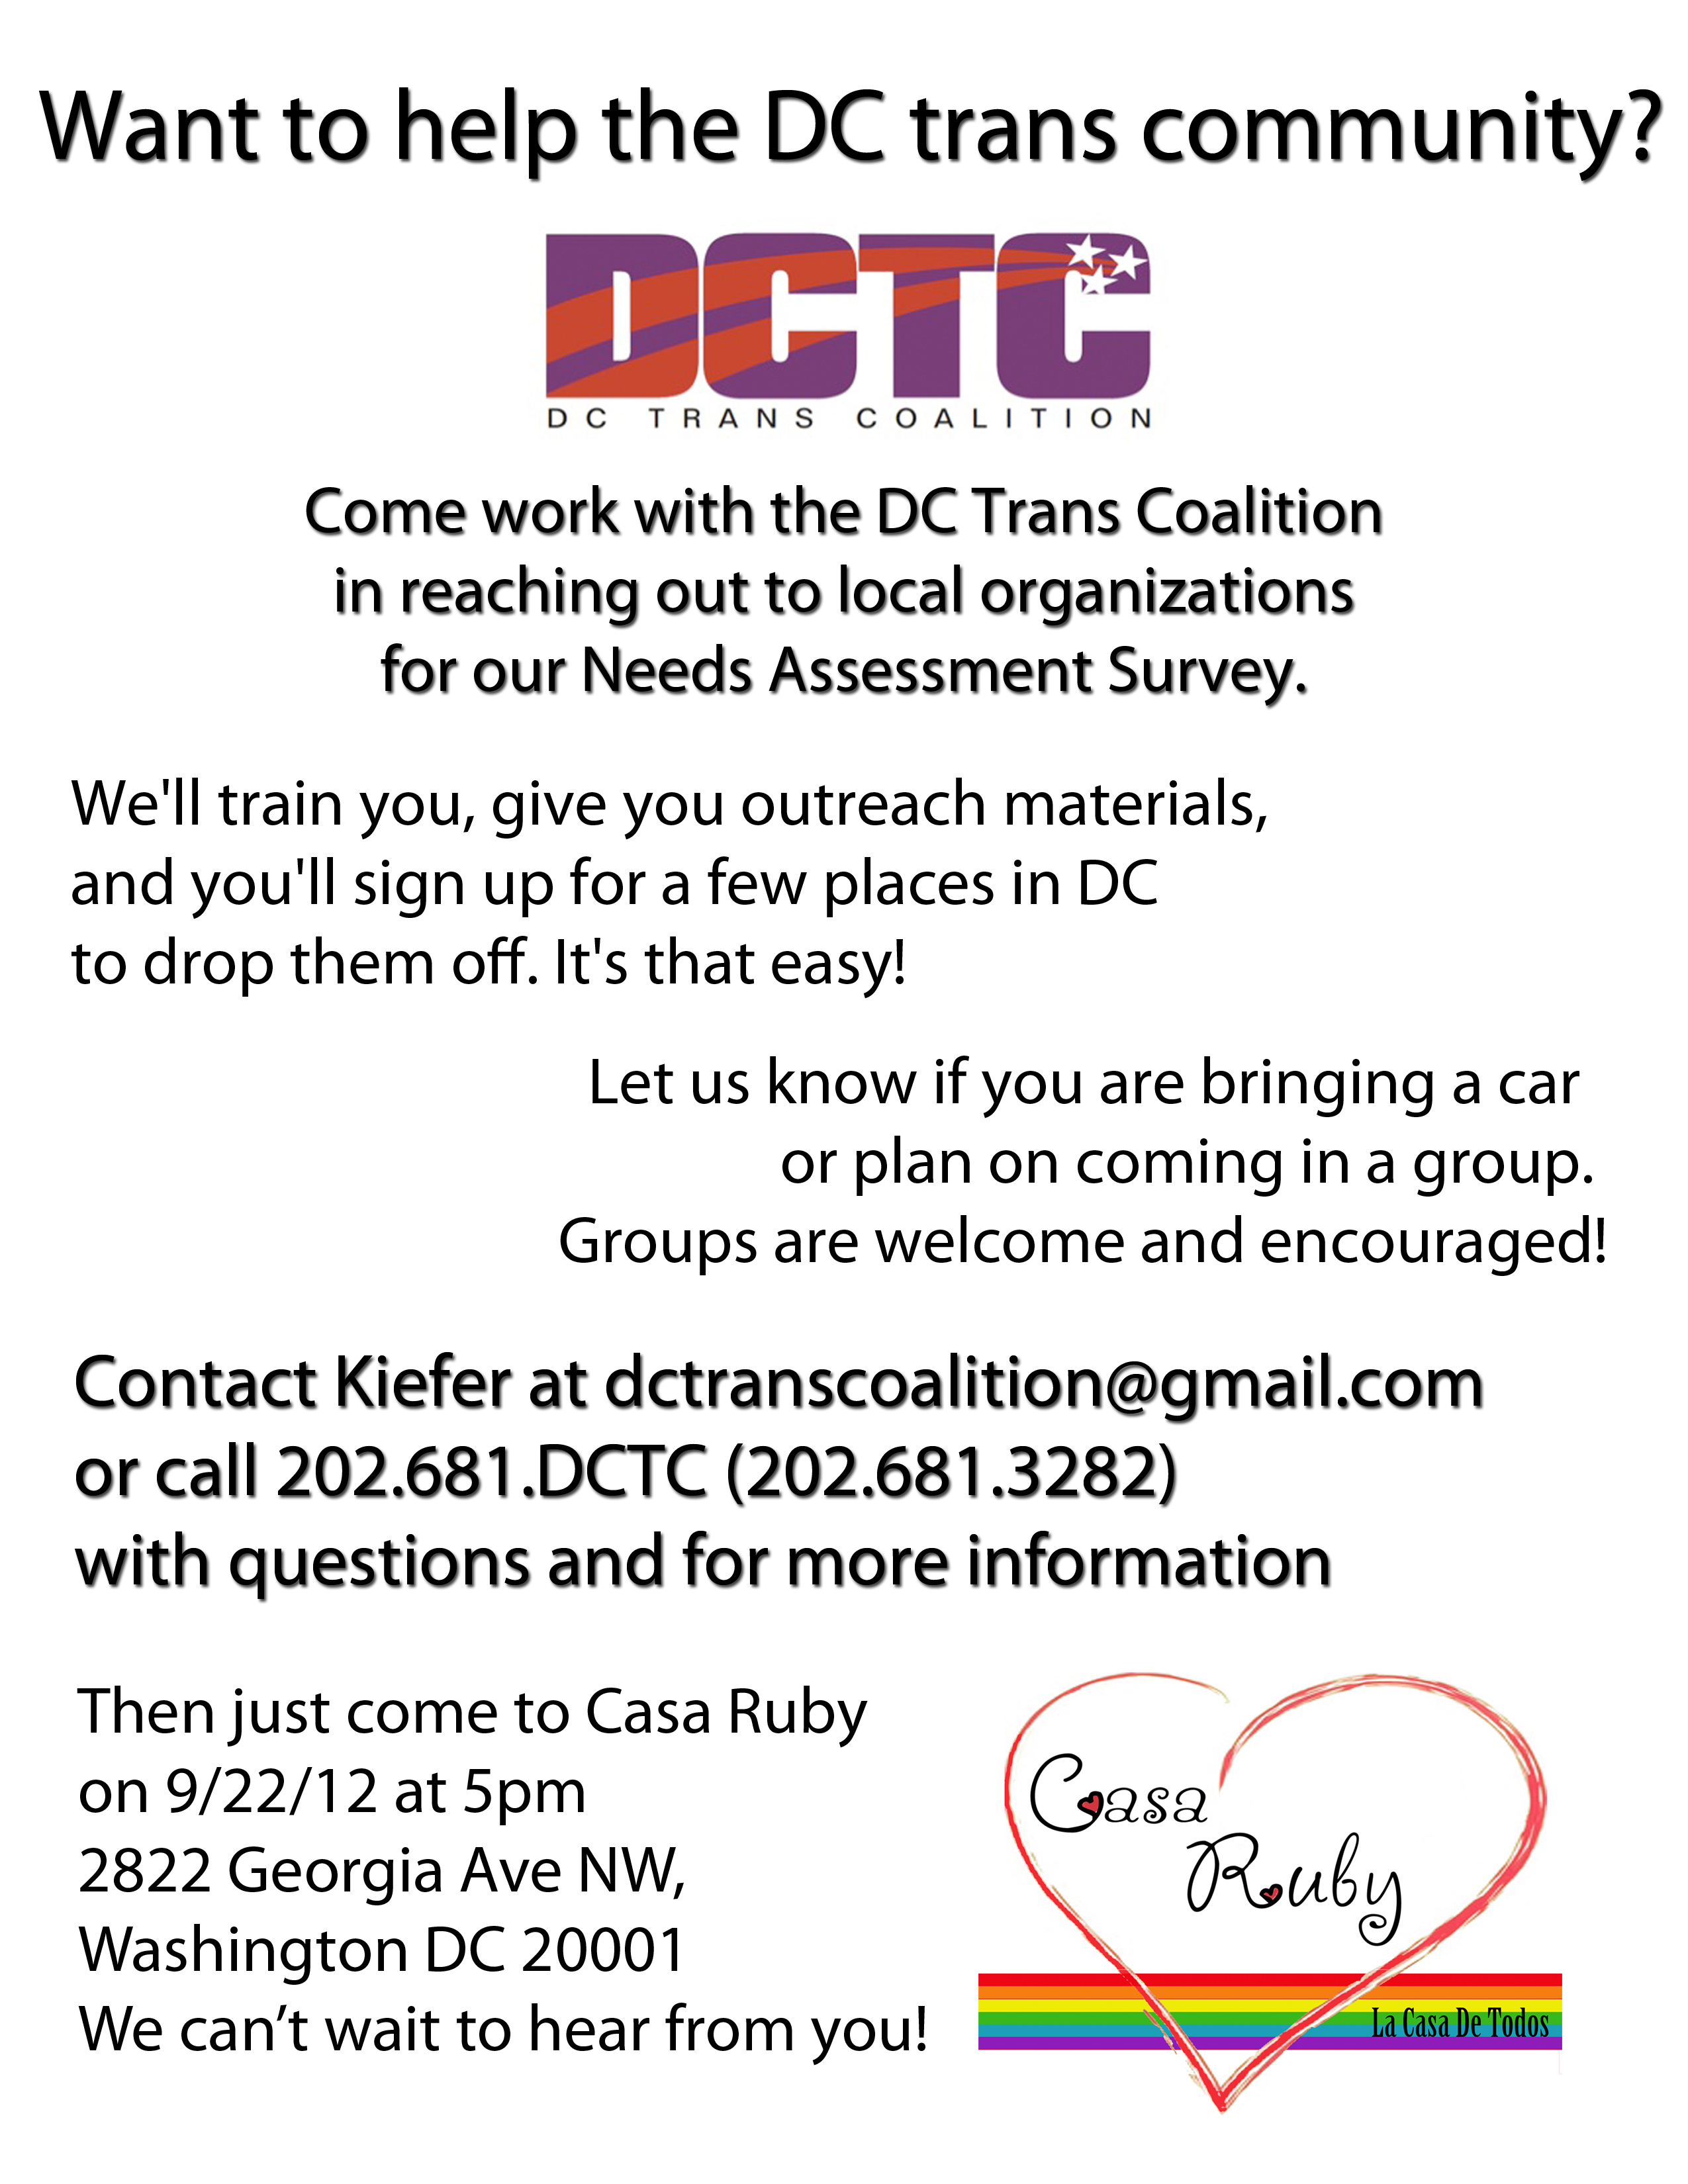 Needs Assessment Outreach Event on Saturday! | DC Trans Coalition